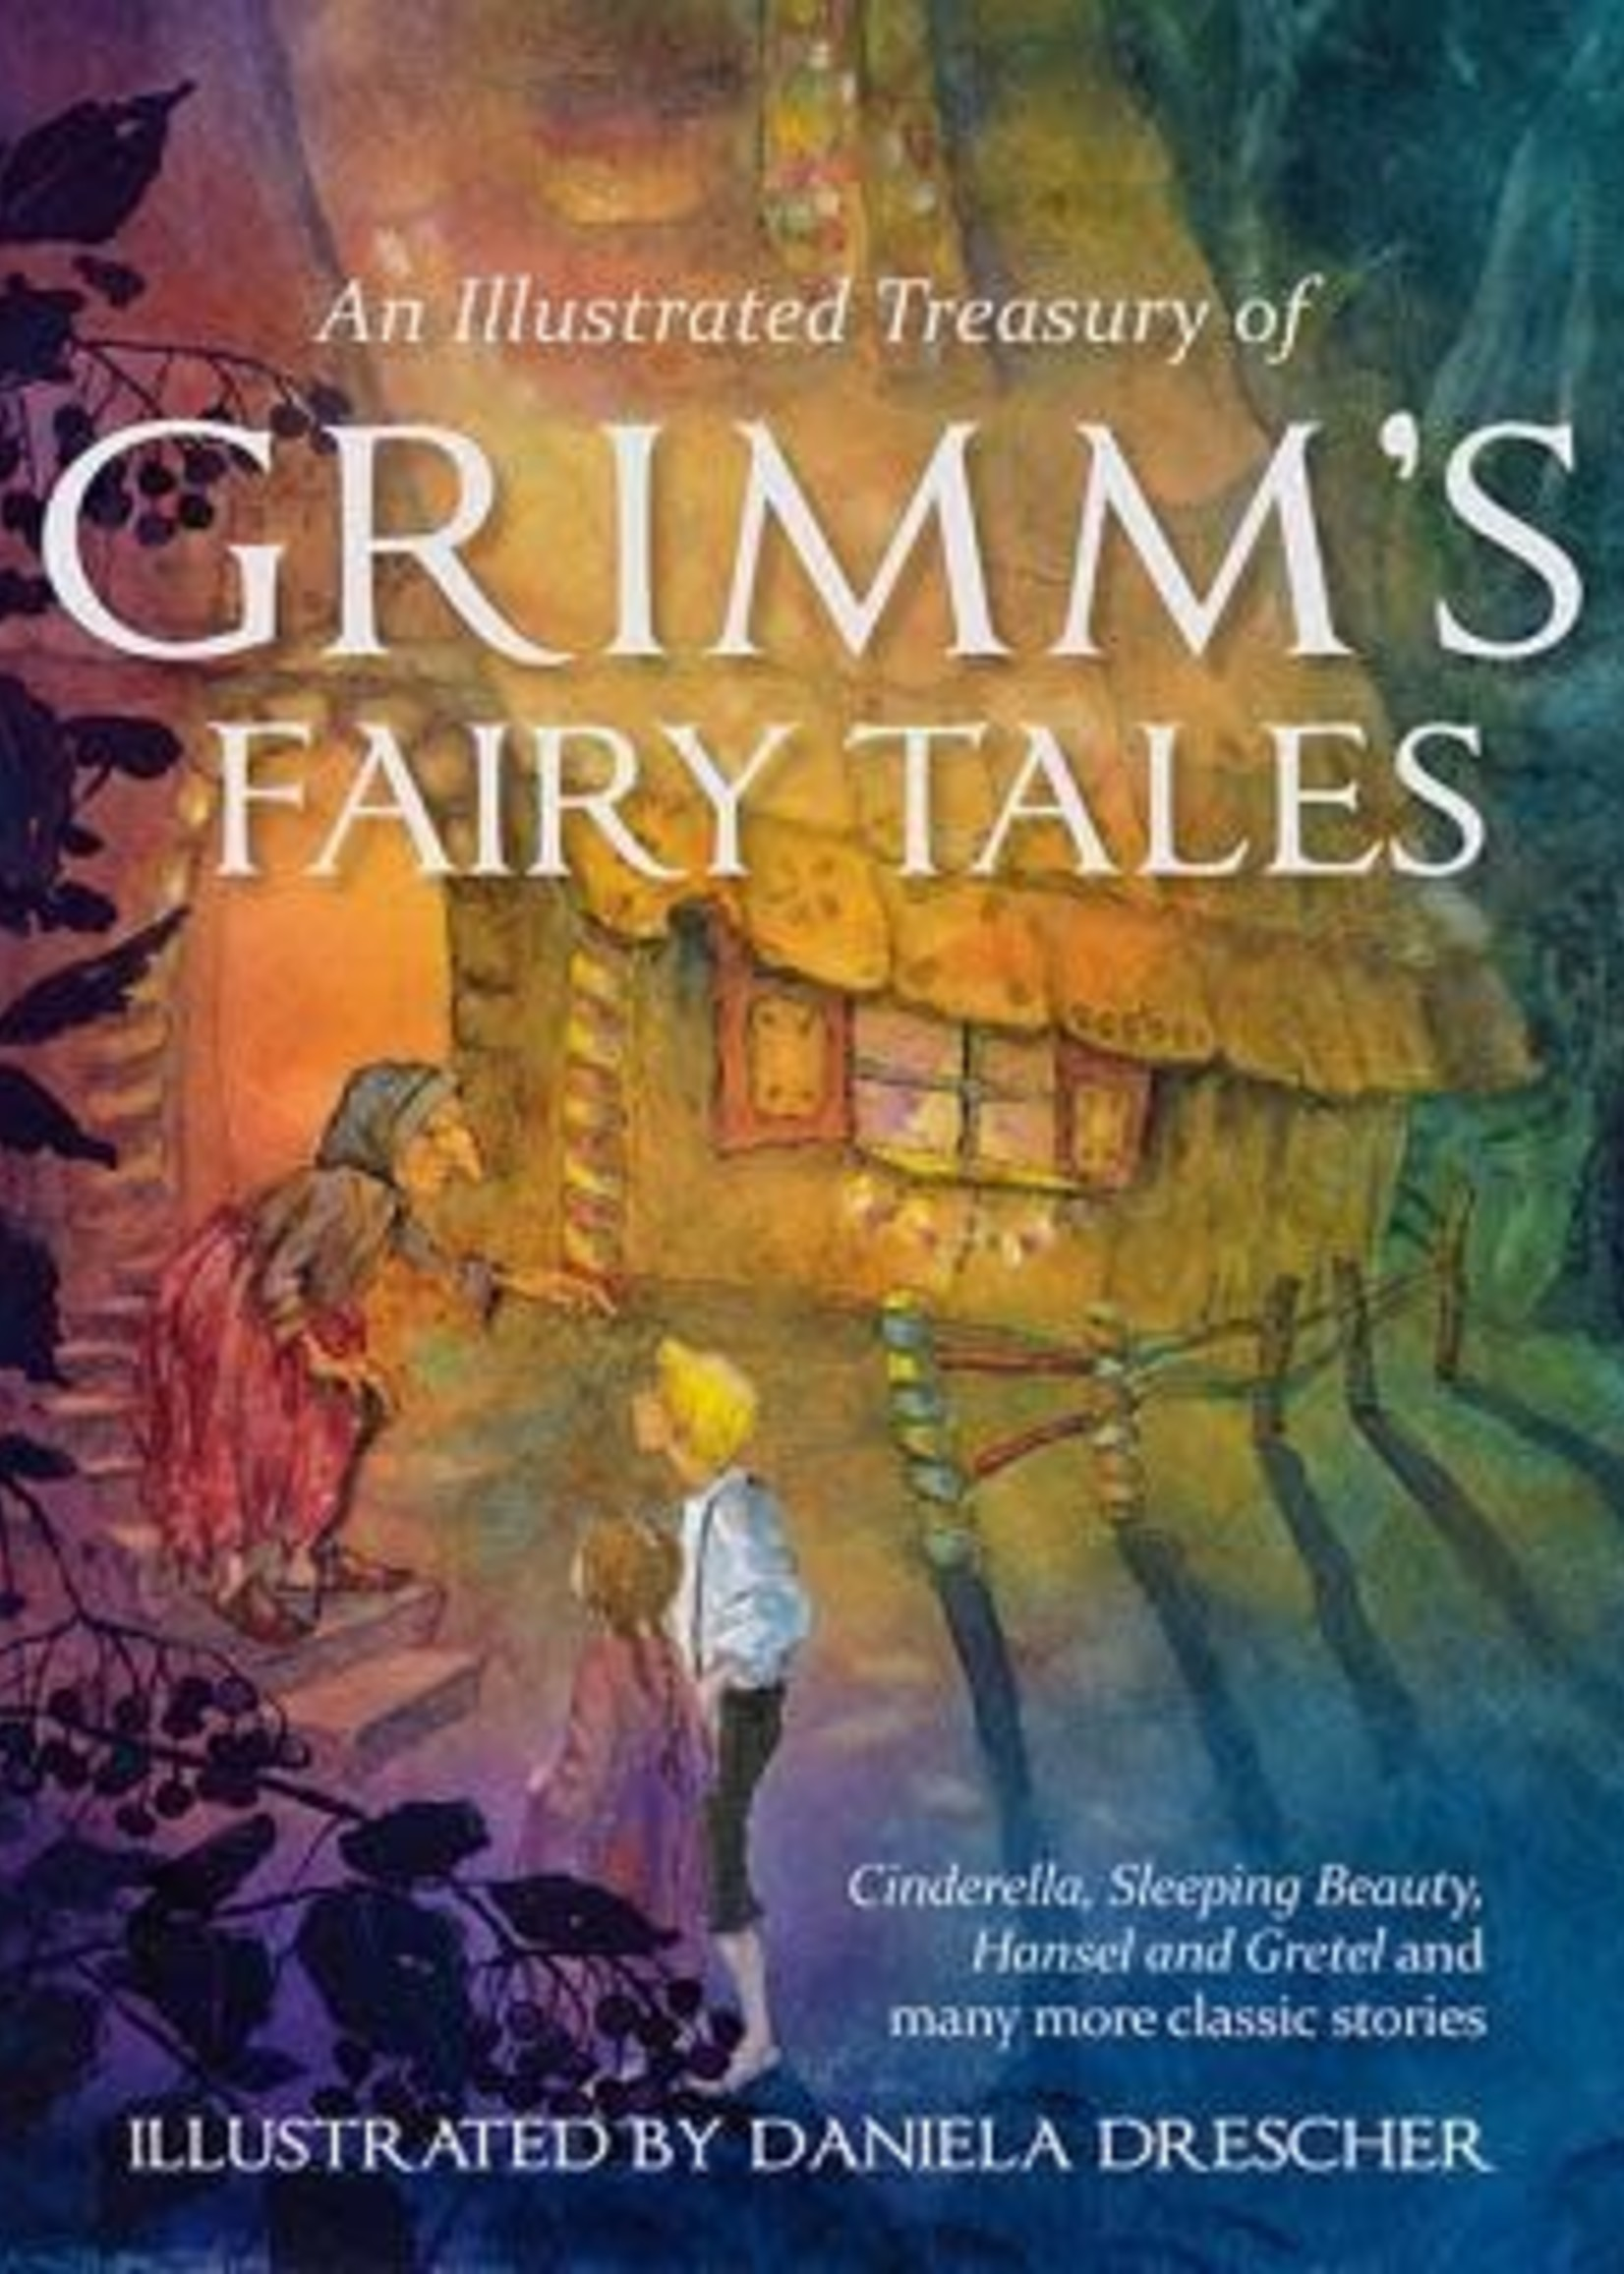 An Illustrated Treasury of Grimm's Fairy Tales by Jacob Grimm, Wilhelm Grimm